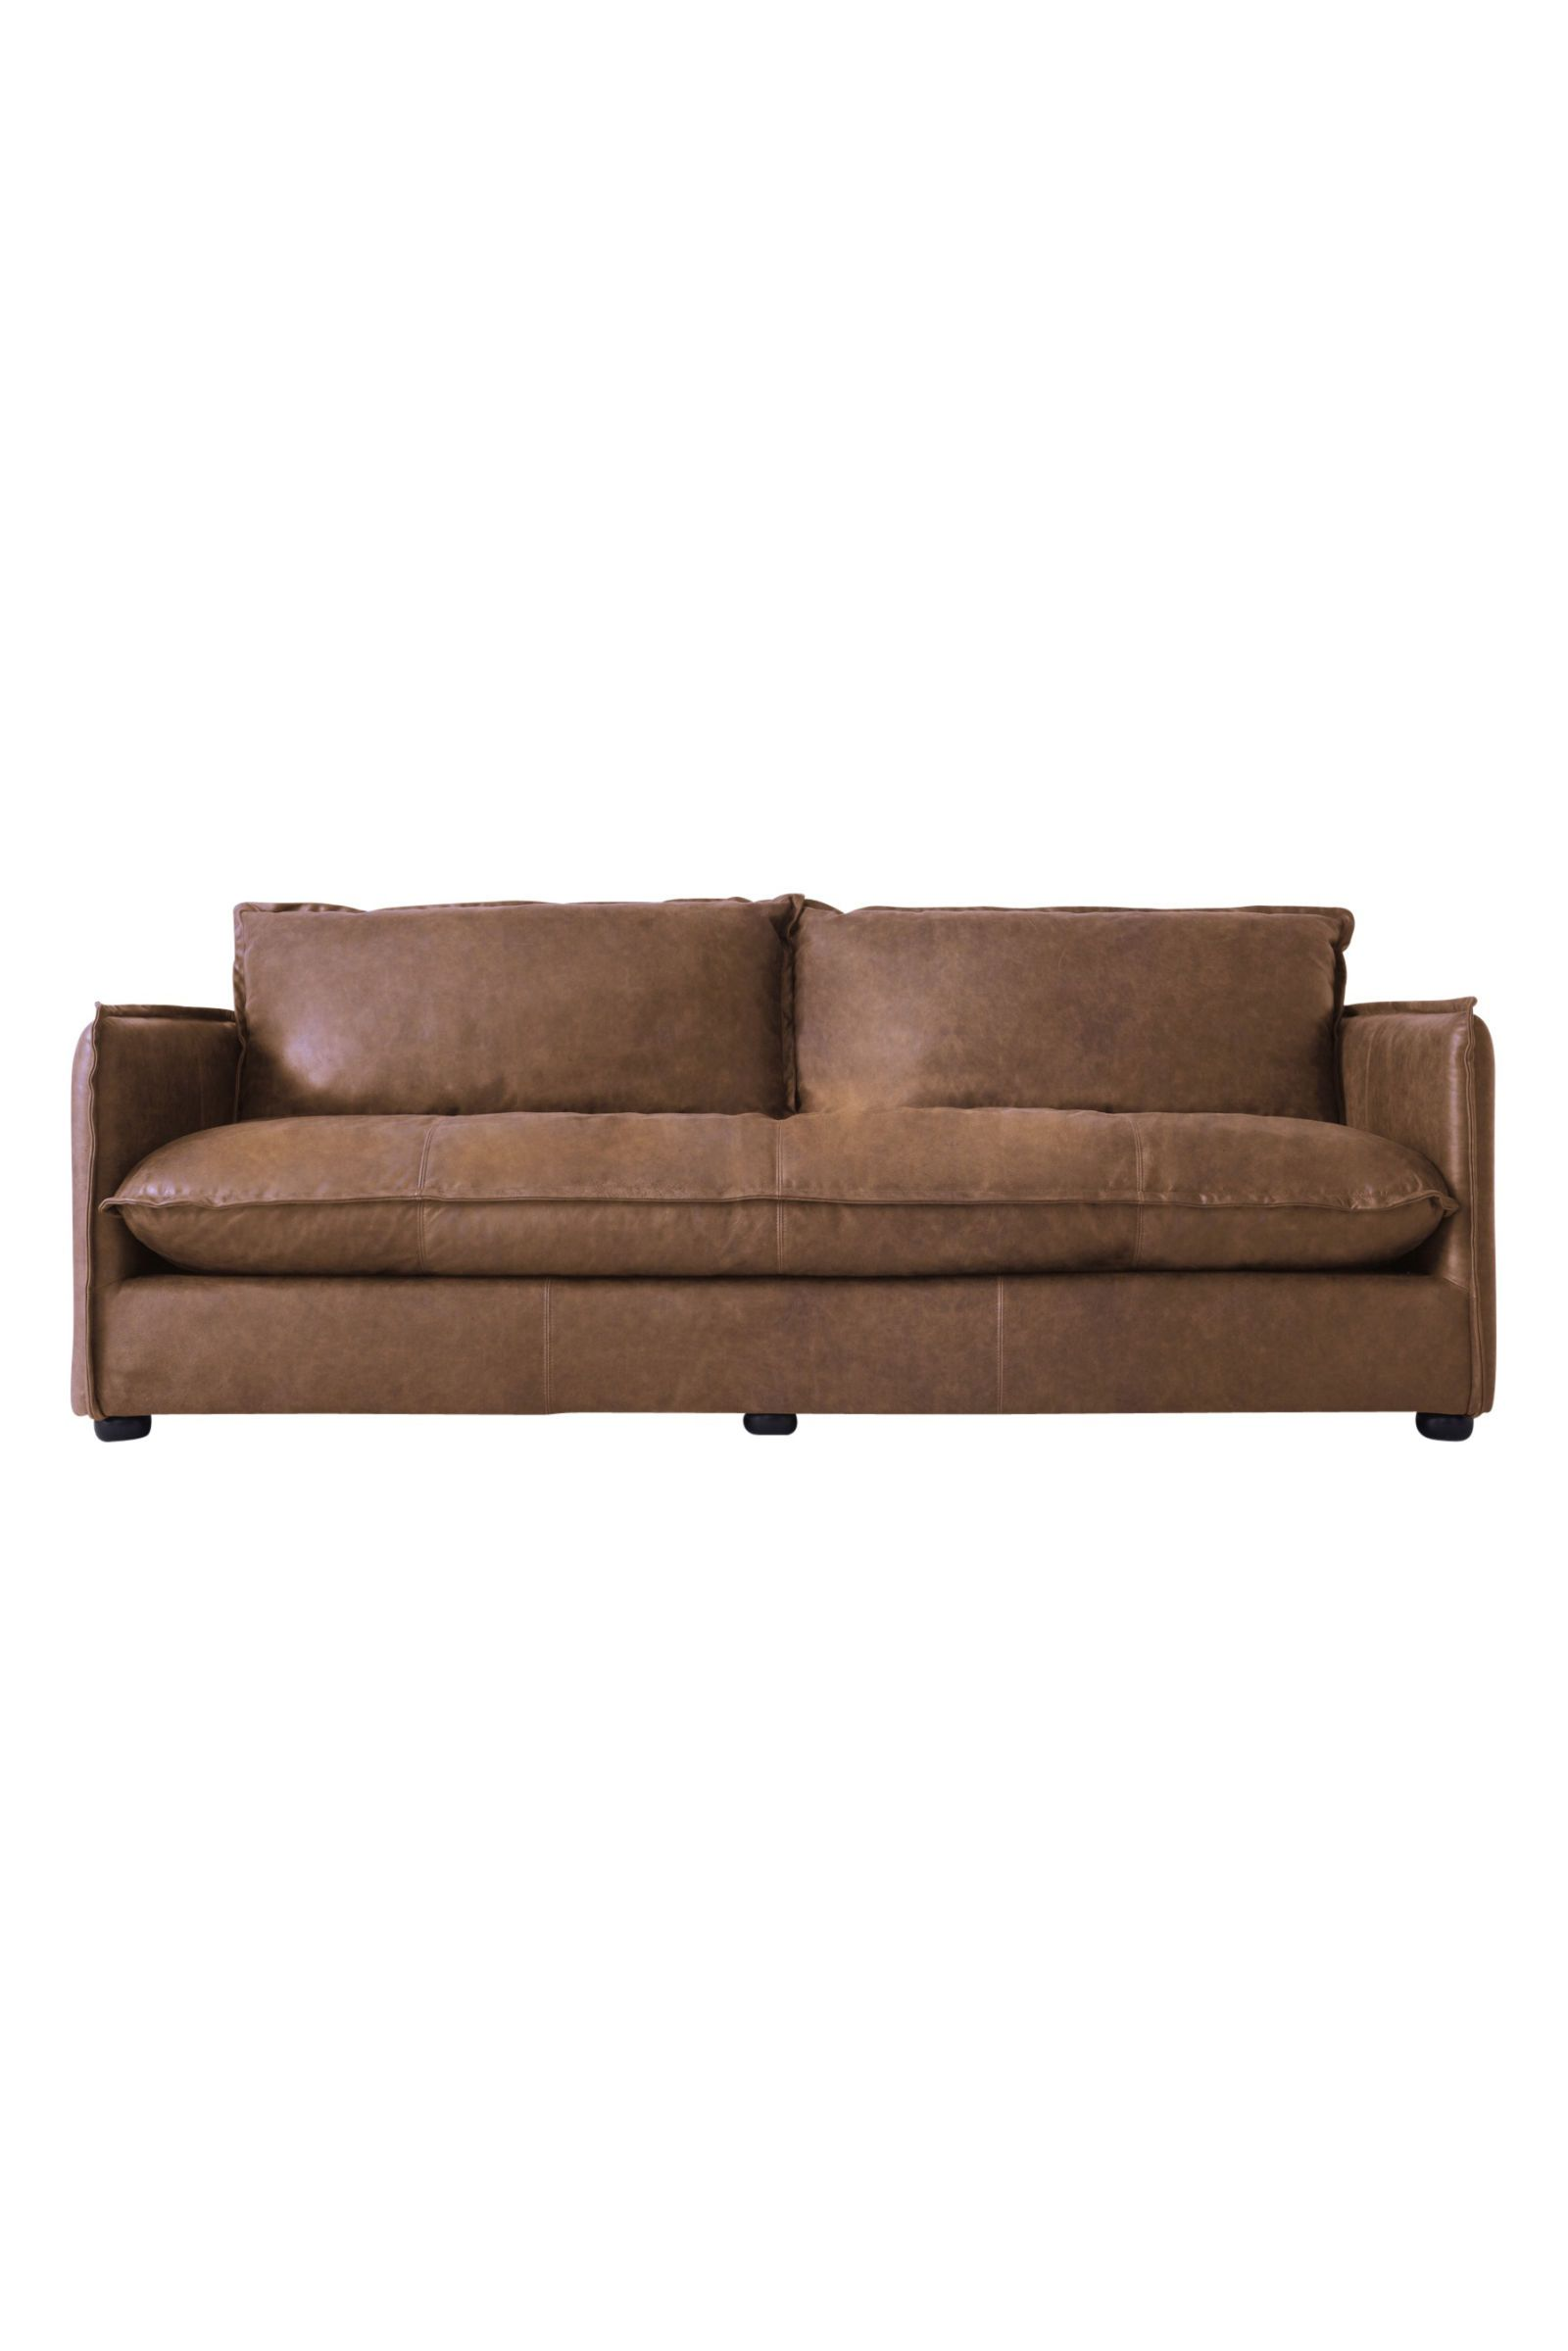 Image. The Downiest Sofa